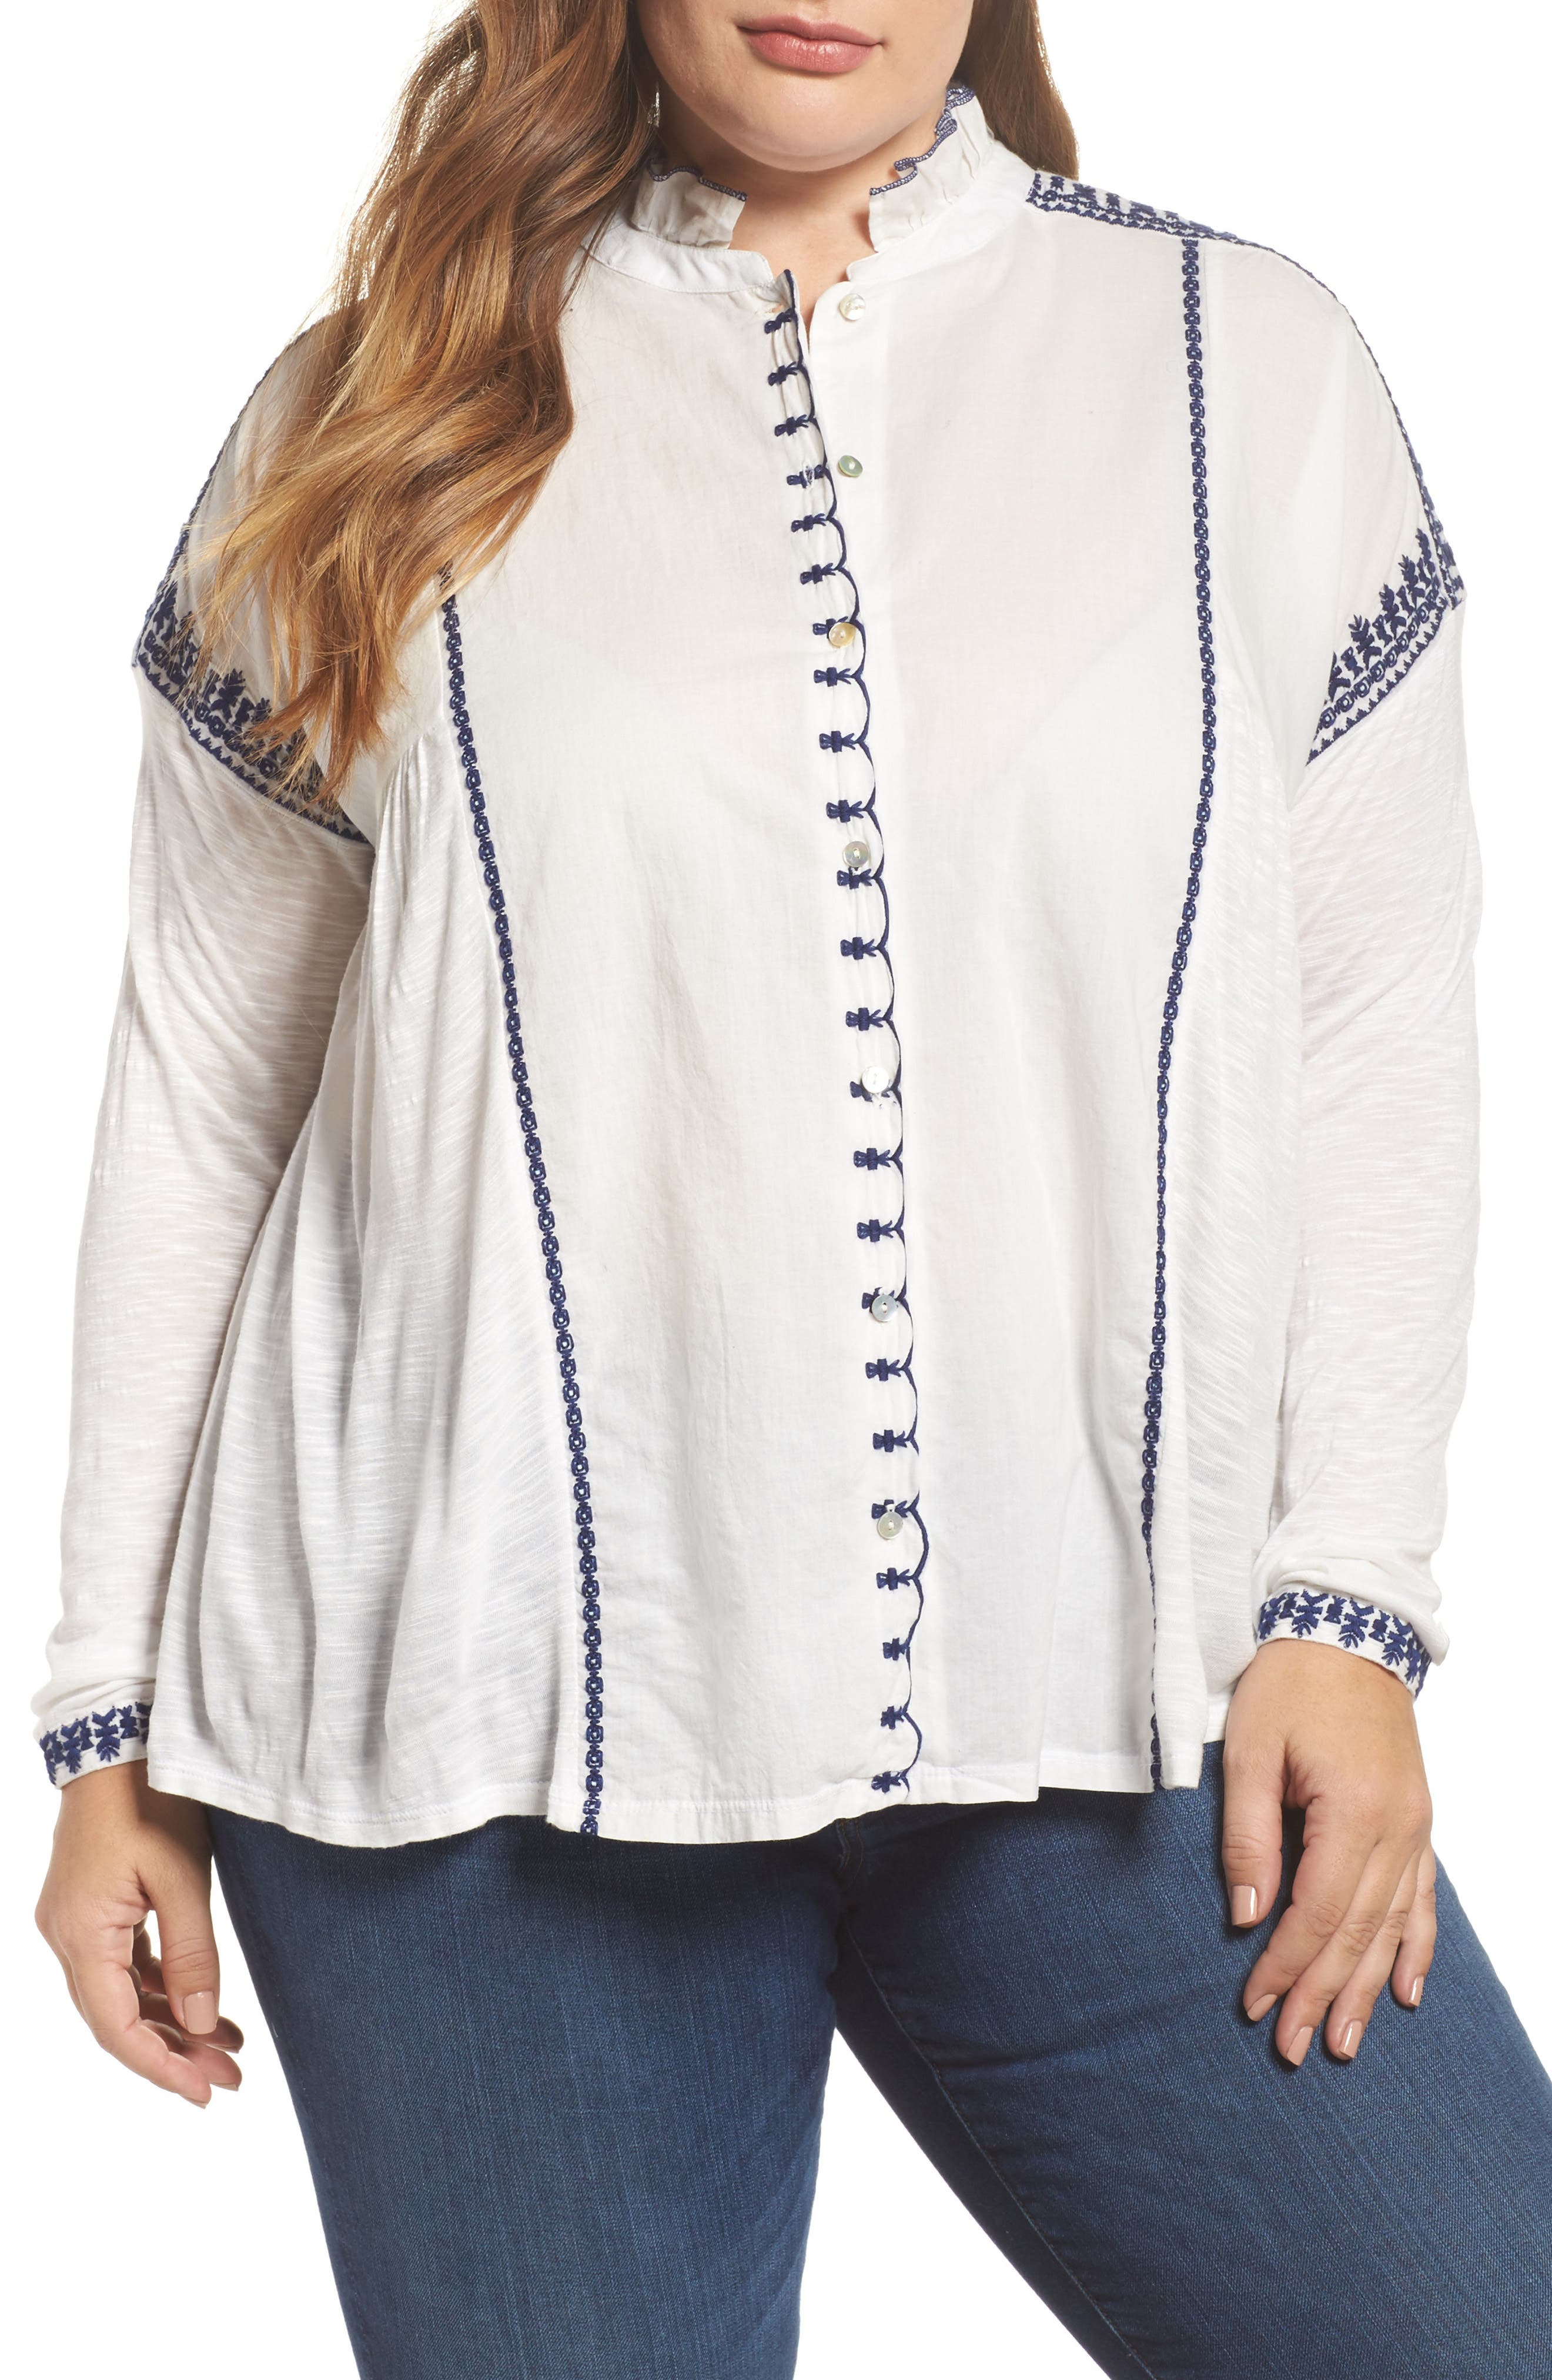 Main Image - Lucky Brand Embroidered Mixed Media Top (Plus Size)